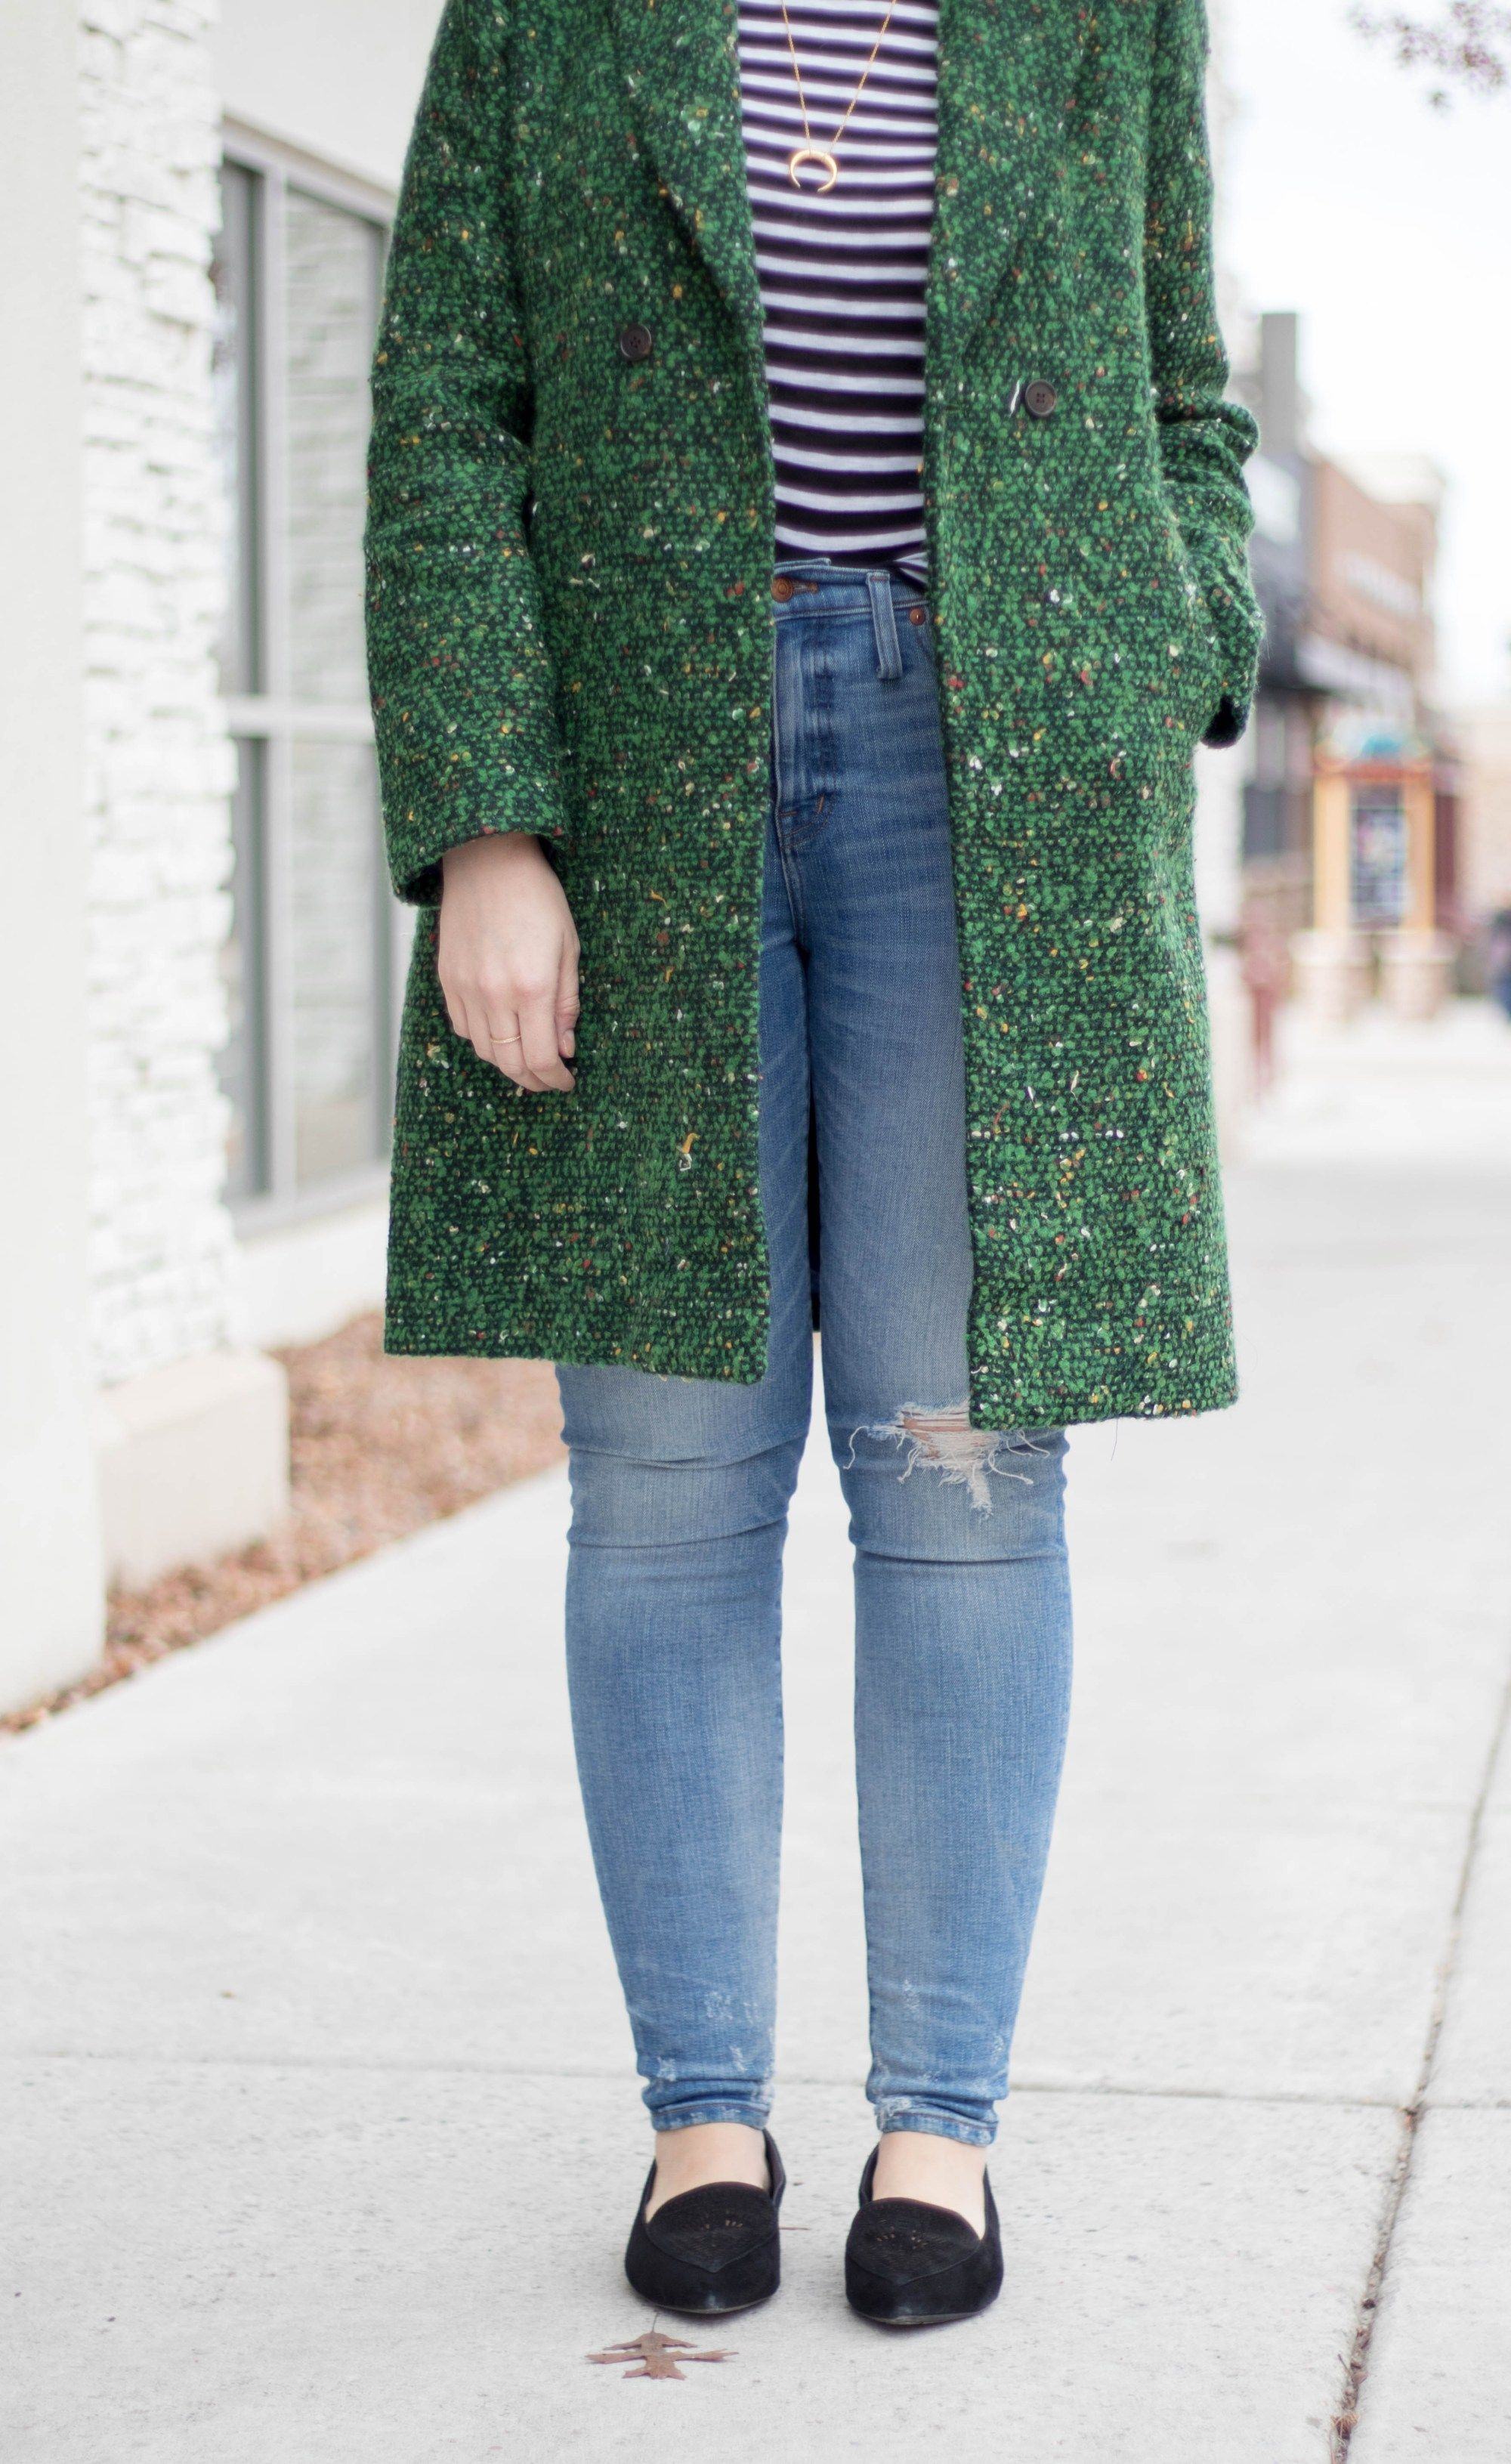 Winter Style: All Legs and Gucci Belt | Brooklyn Blonde